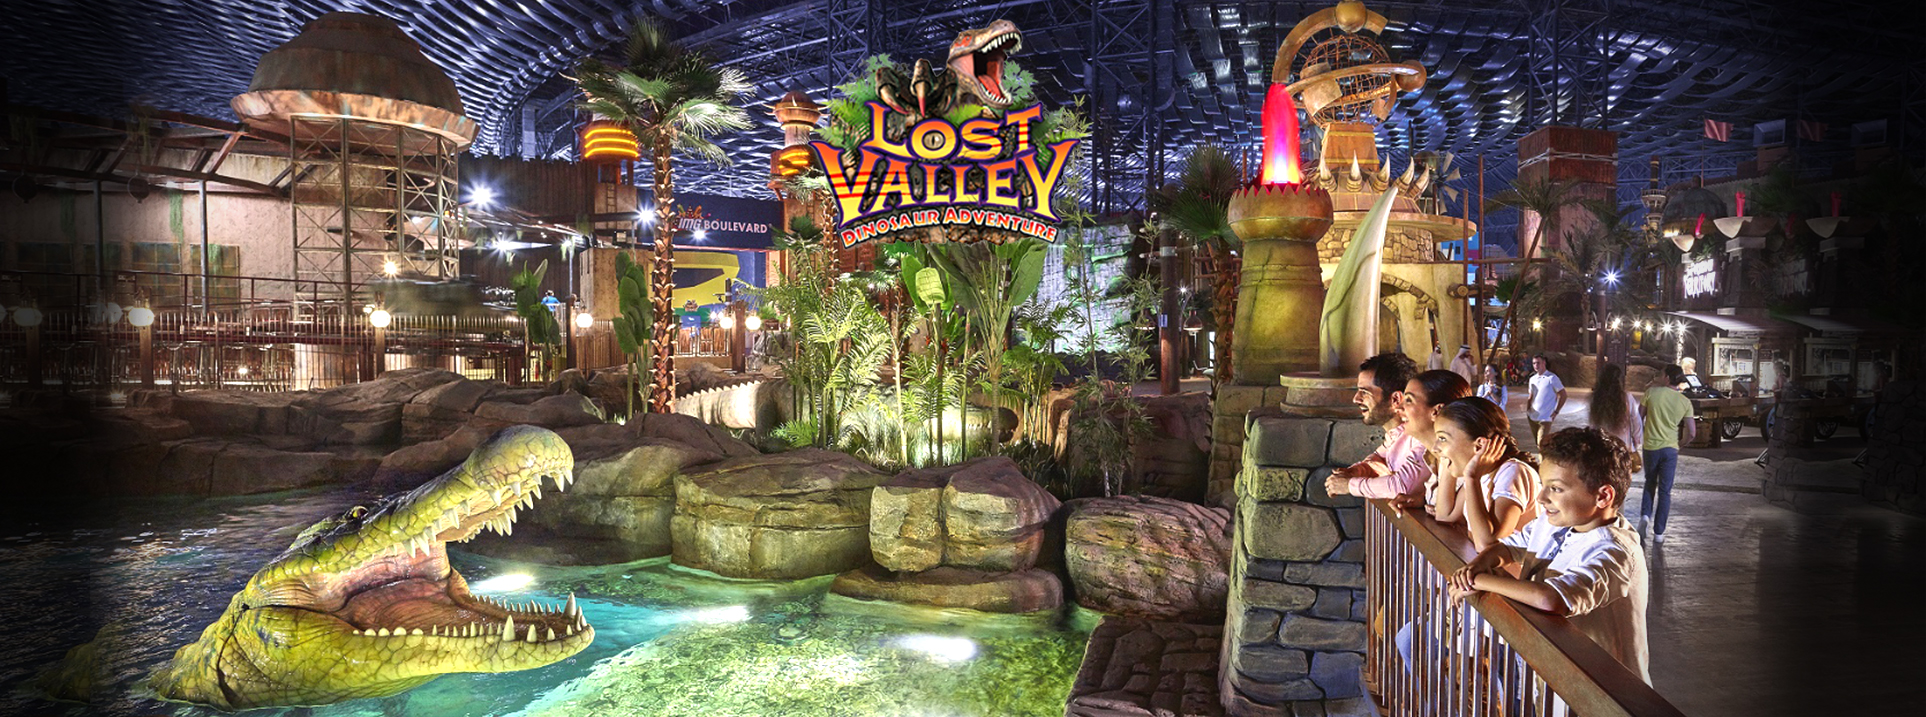 lost-valley-banner.jpg